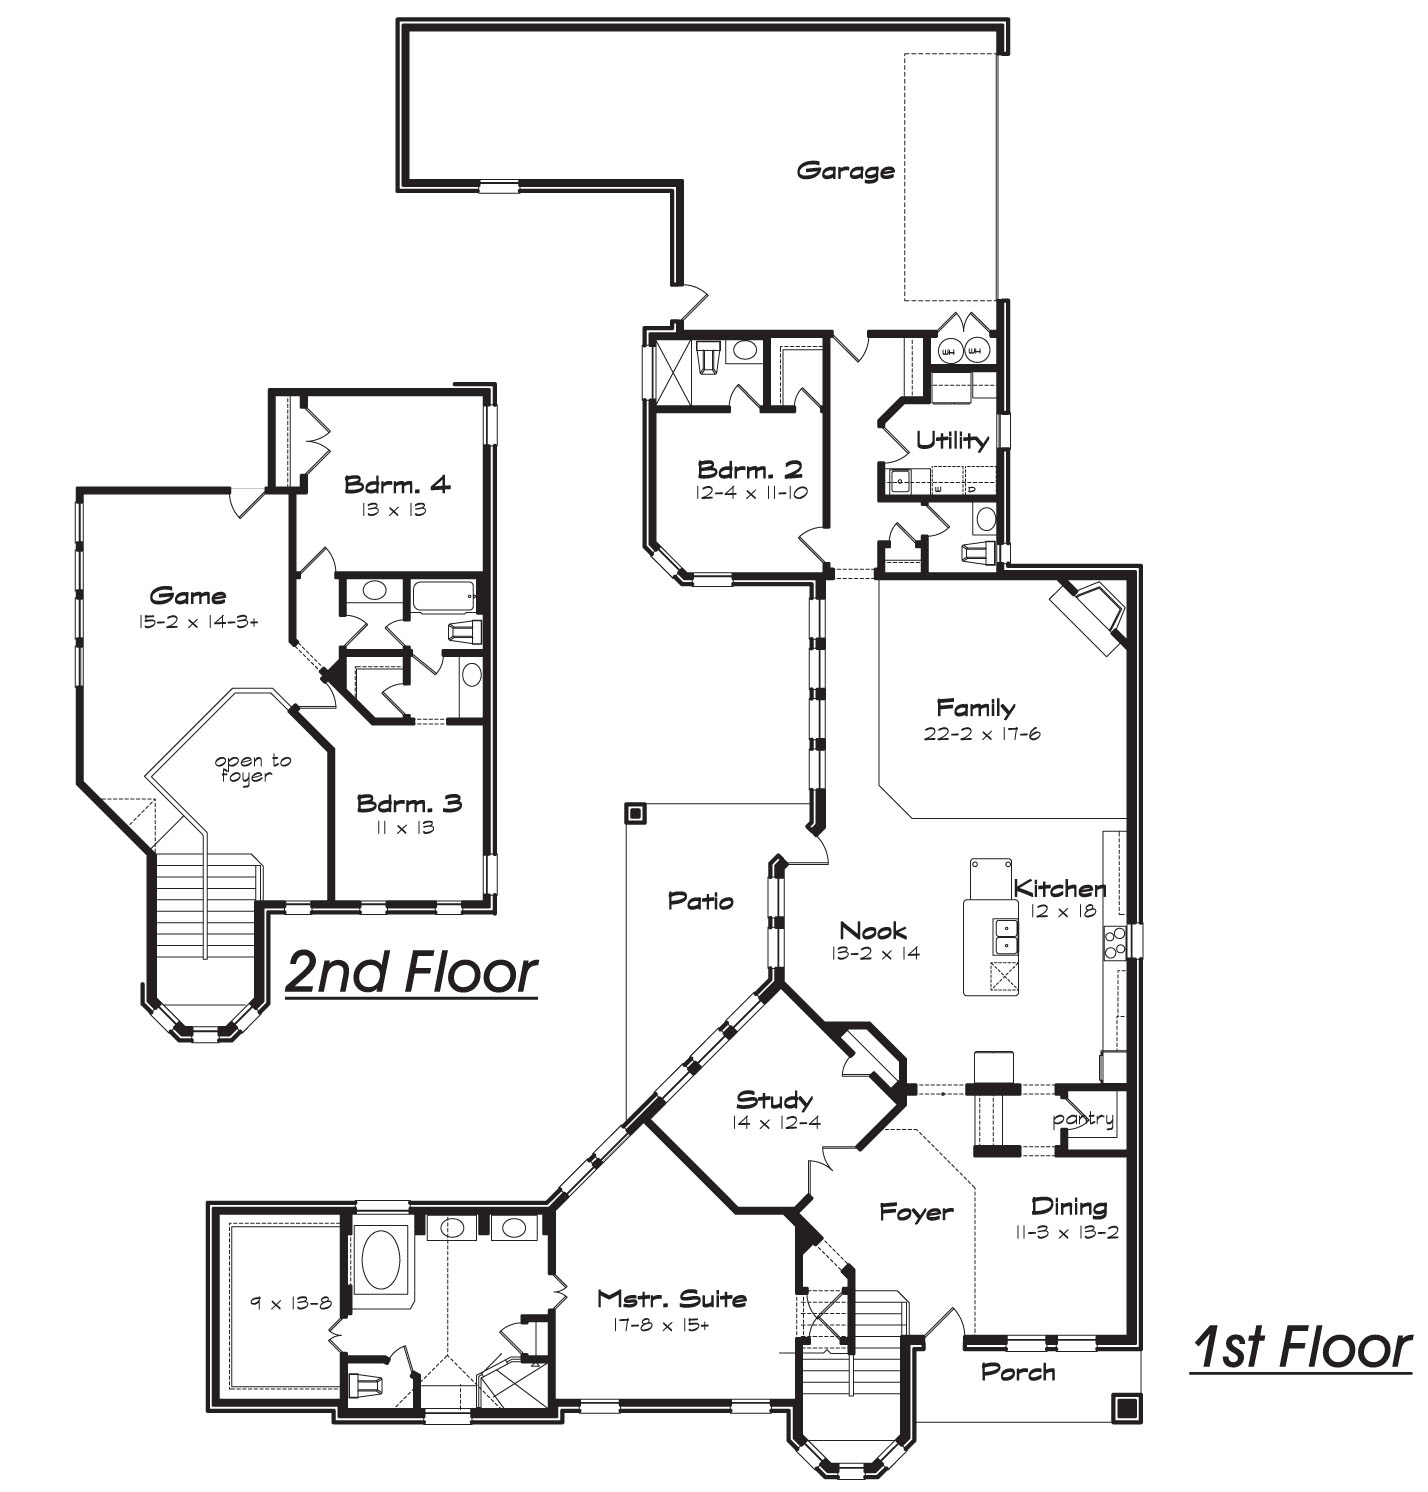 Stamford texas best house plans by creative architects for C shaped house plans